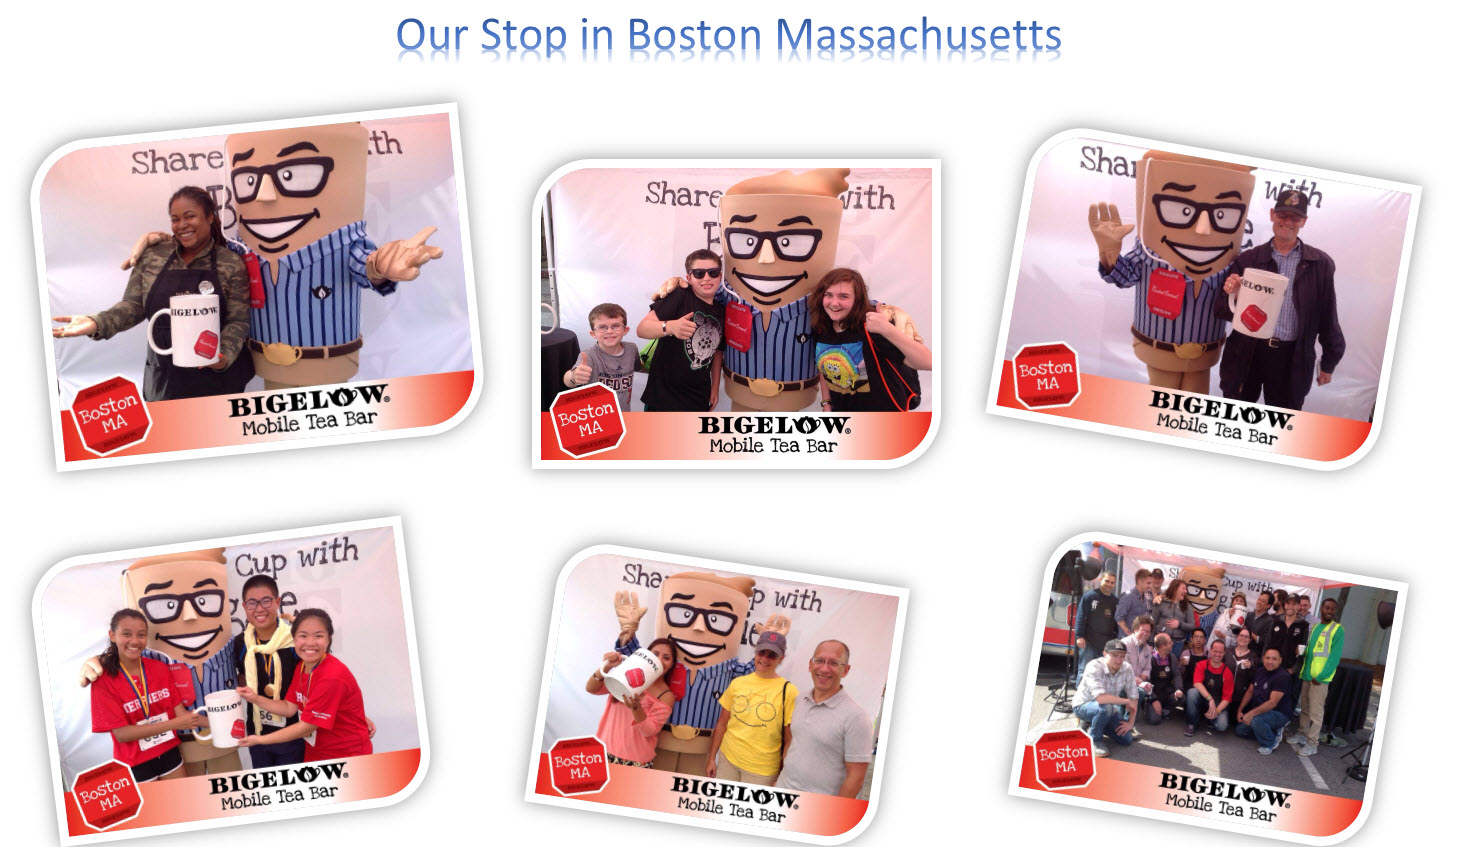 Our stop pics in Boston Massachusetts